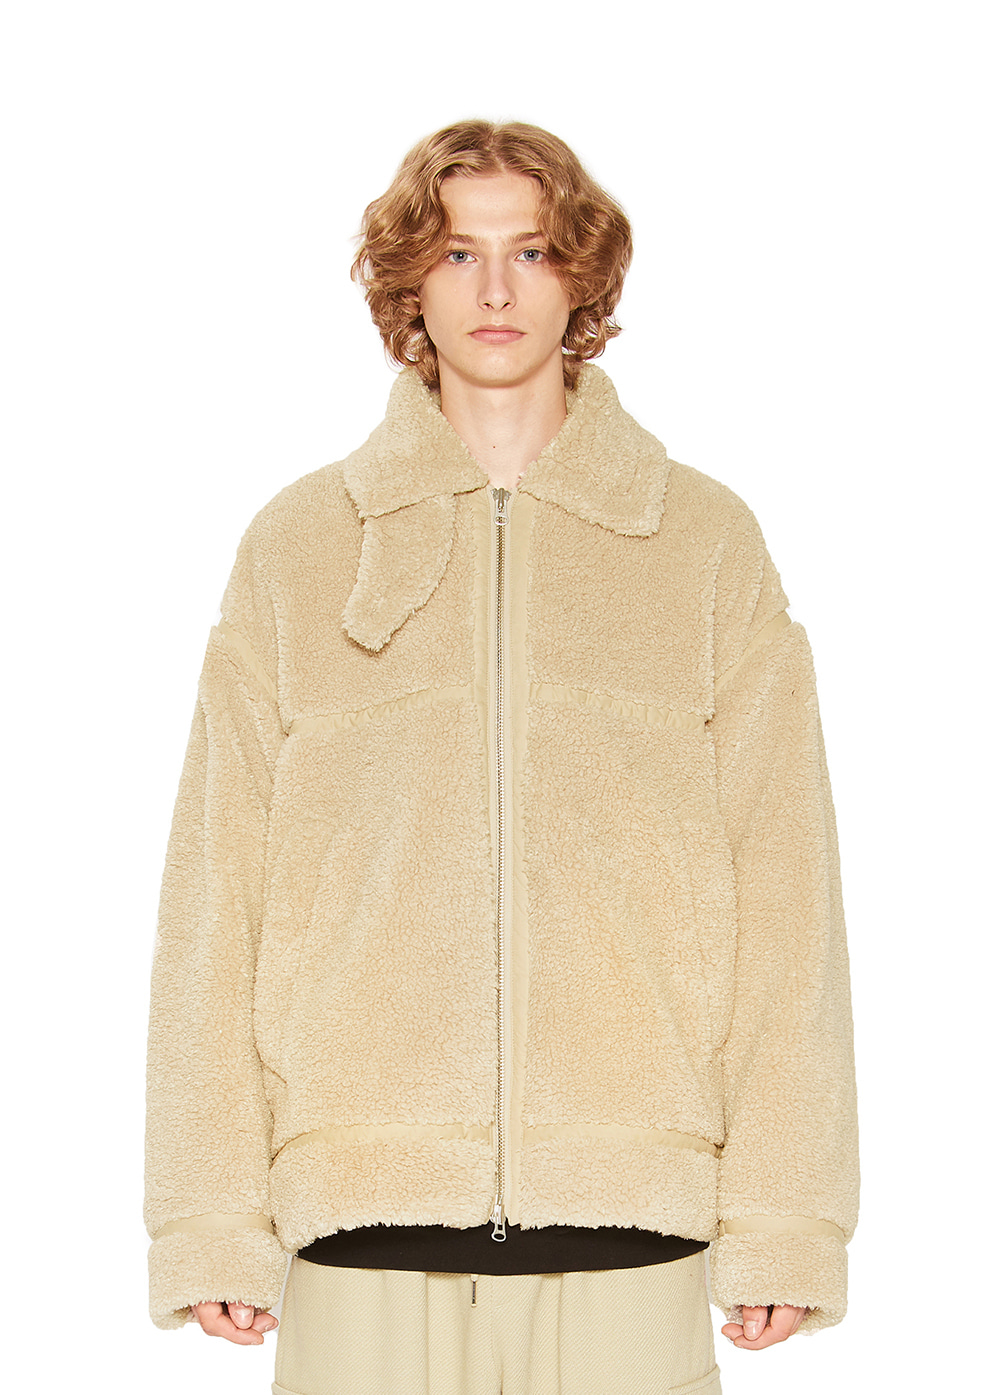 COLLAR SHERPA JACKET ivory